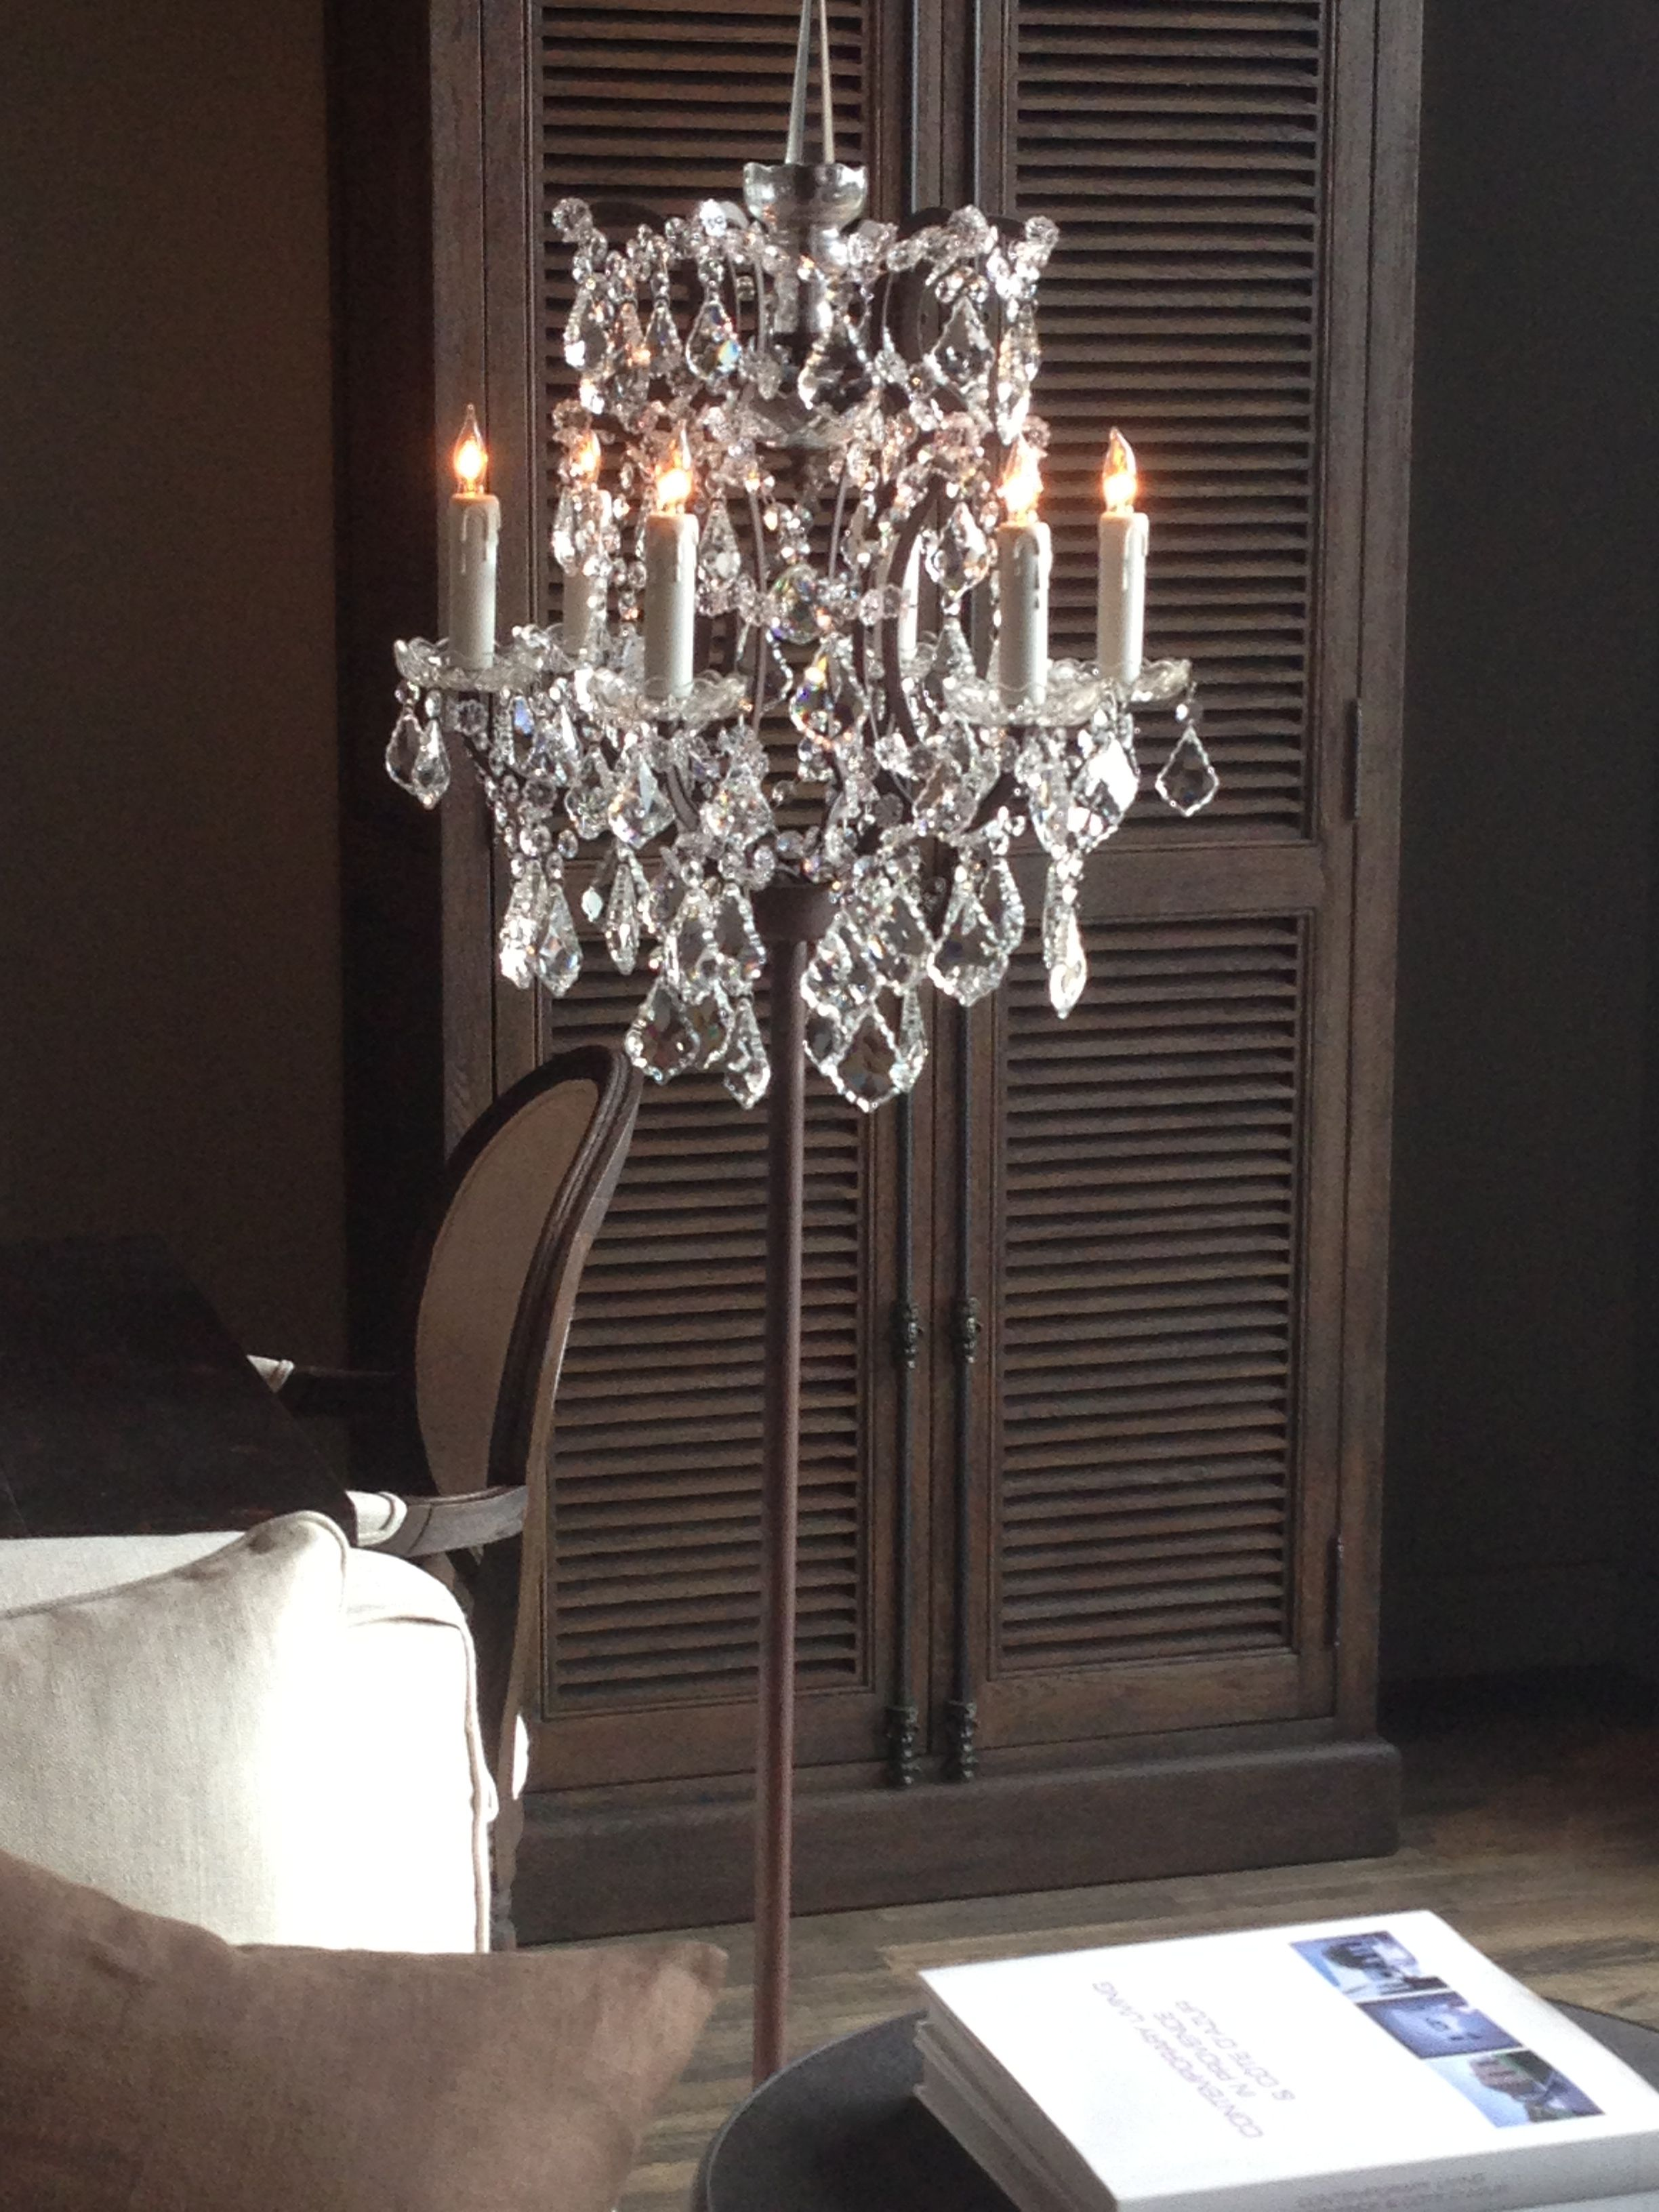 Chandelier Floor Lamp I Own This And It Is So Beautiful The